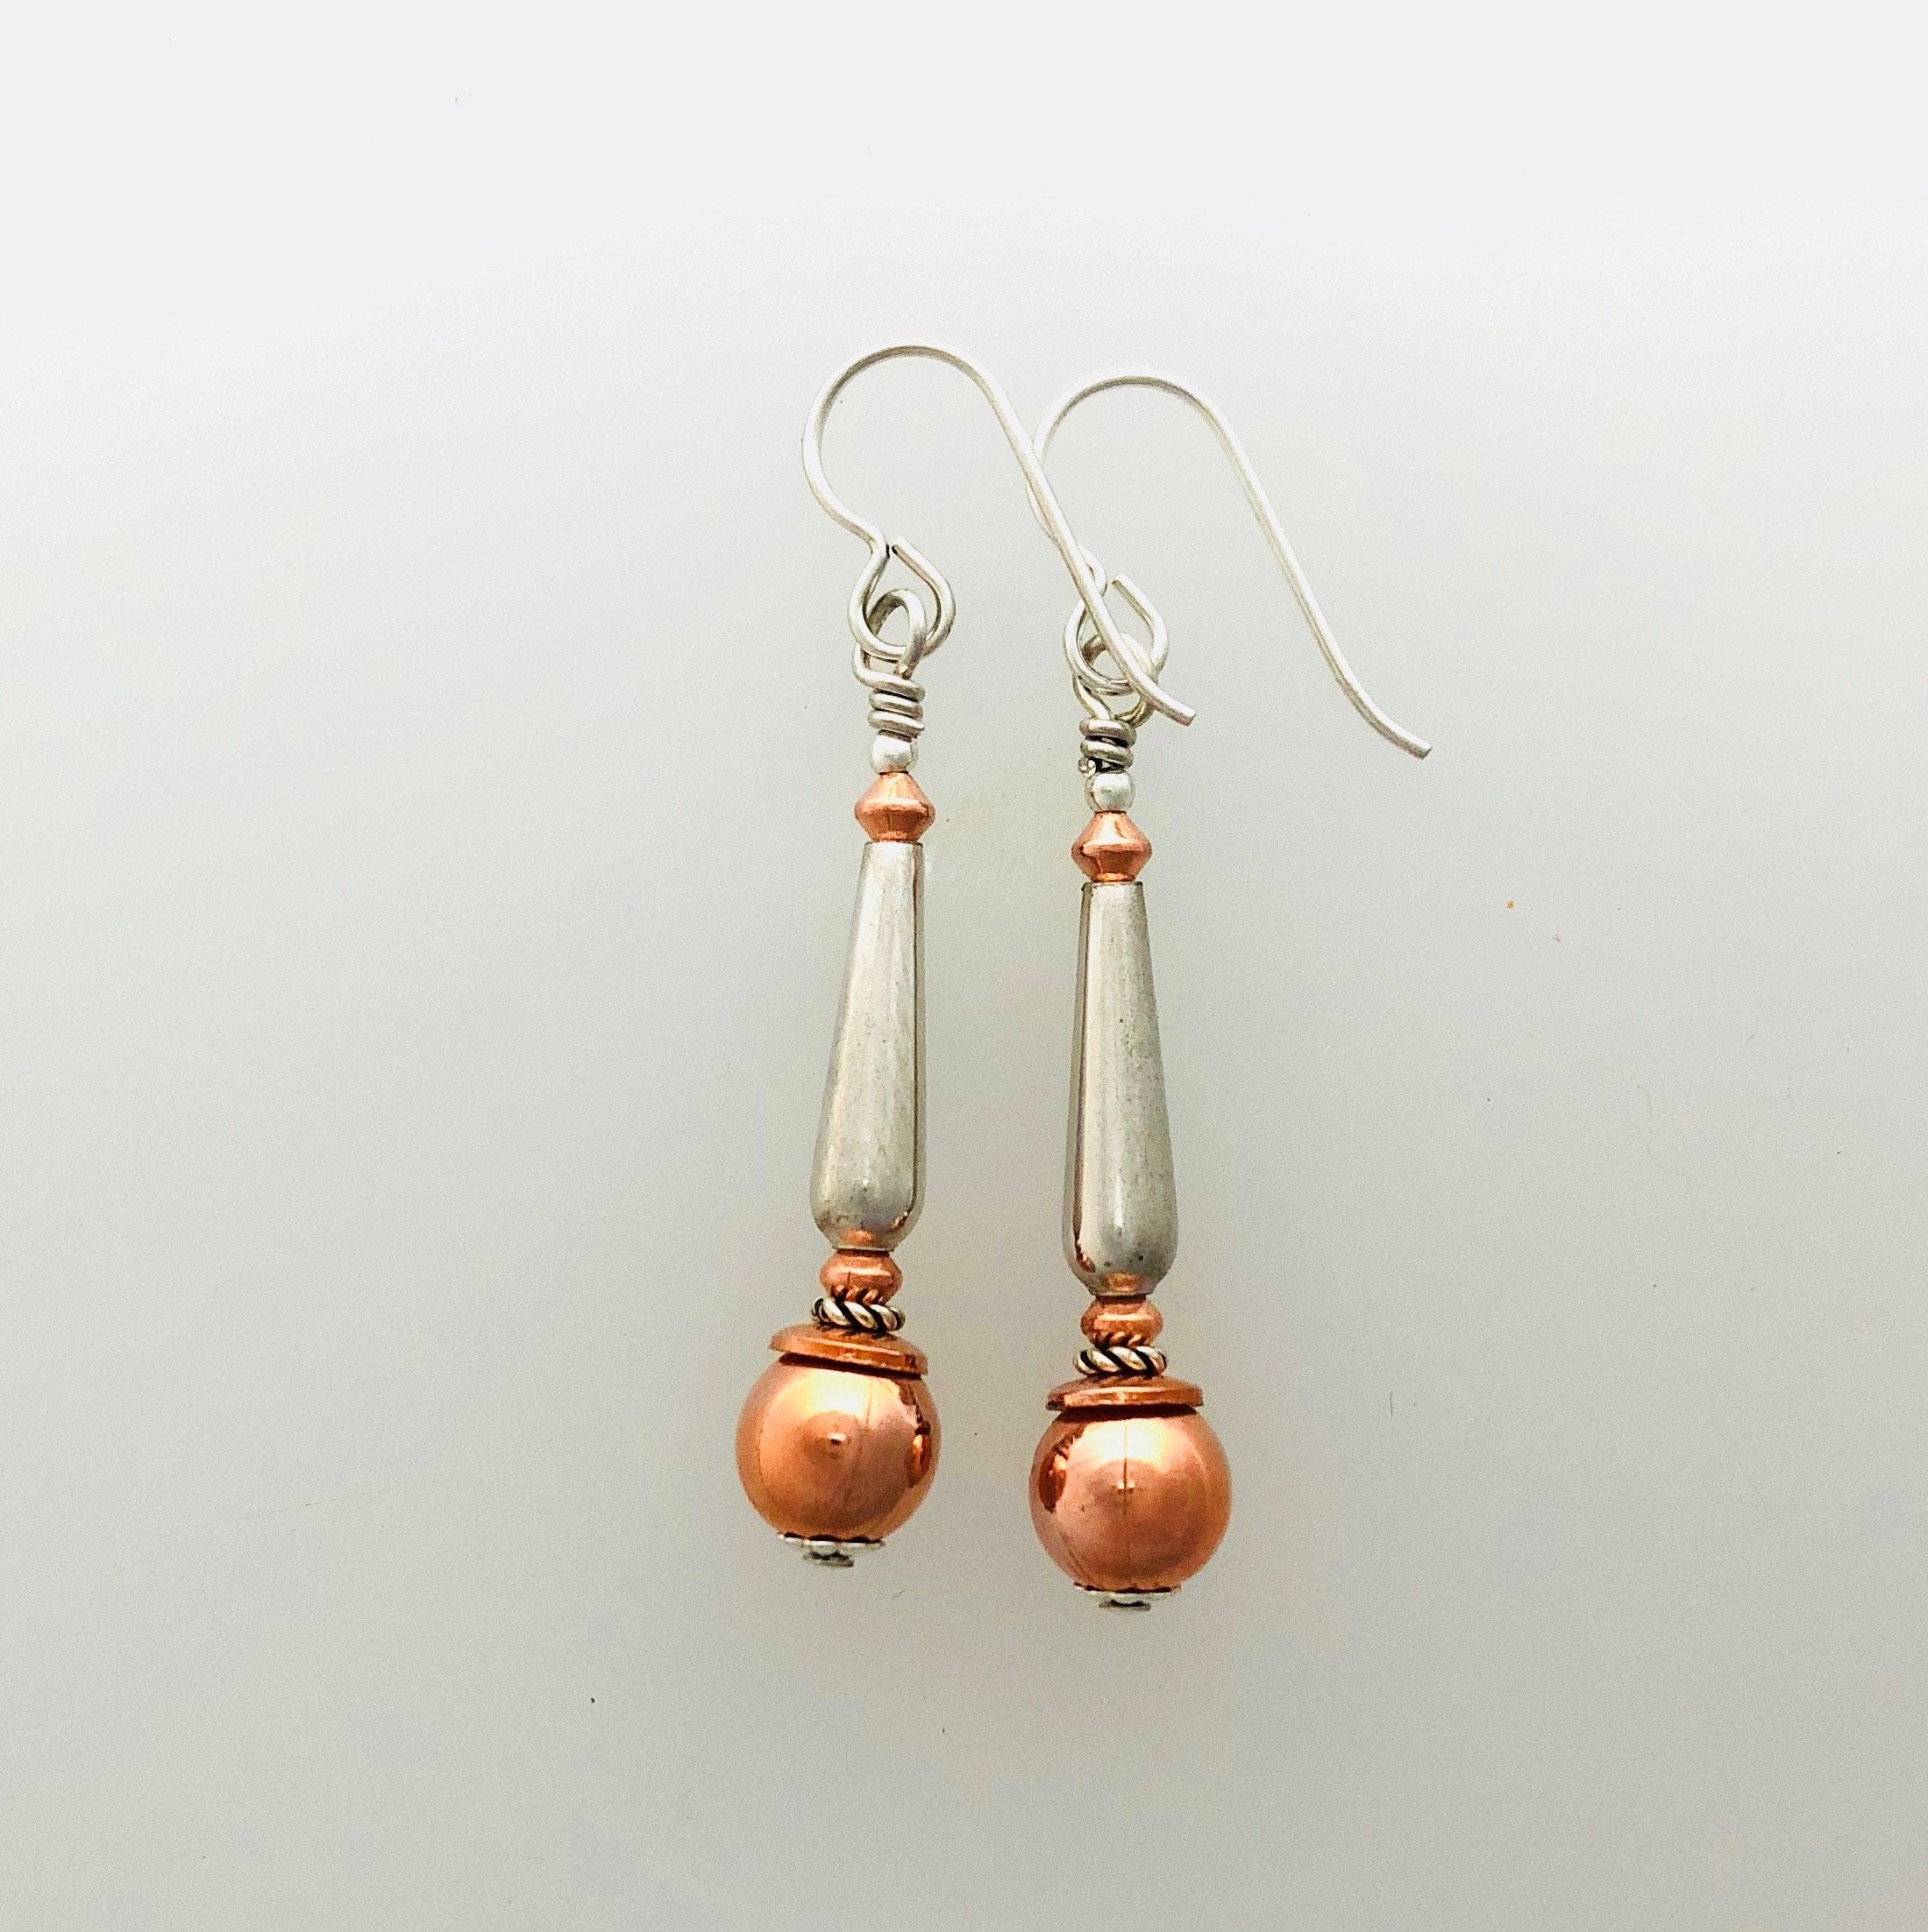 Earrings Copper and Silver #1